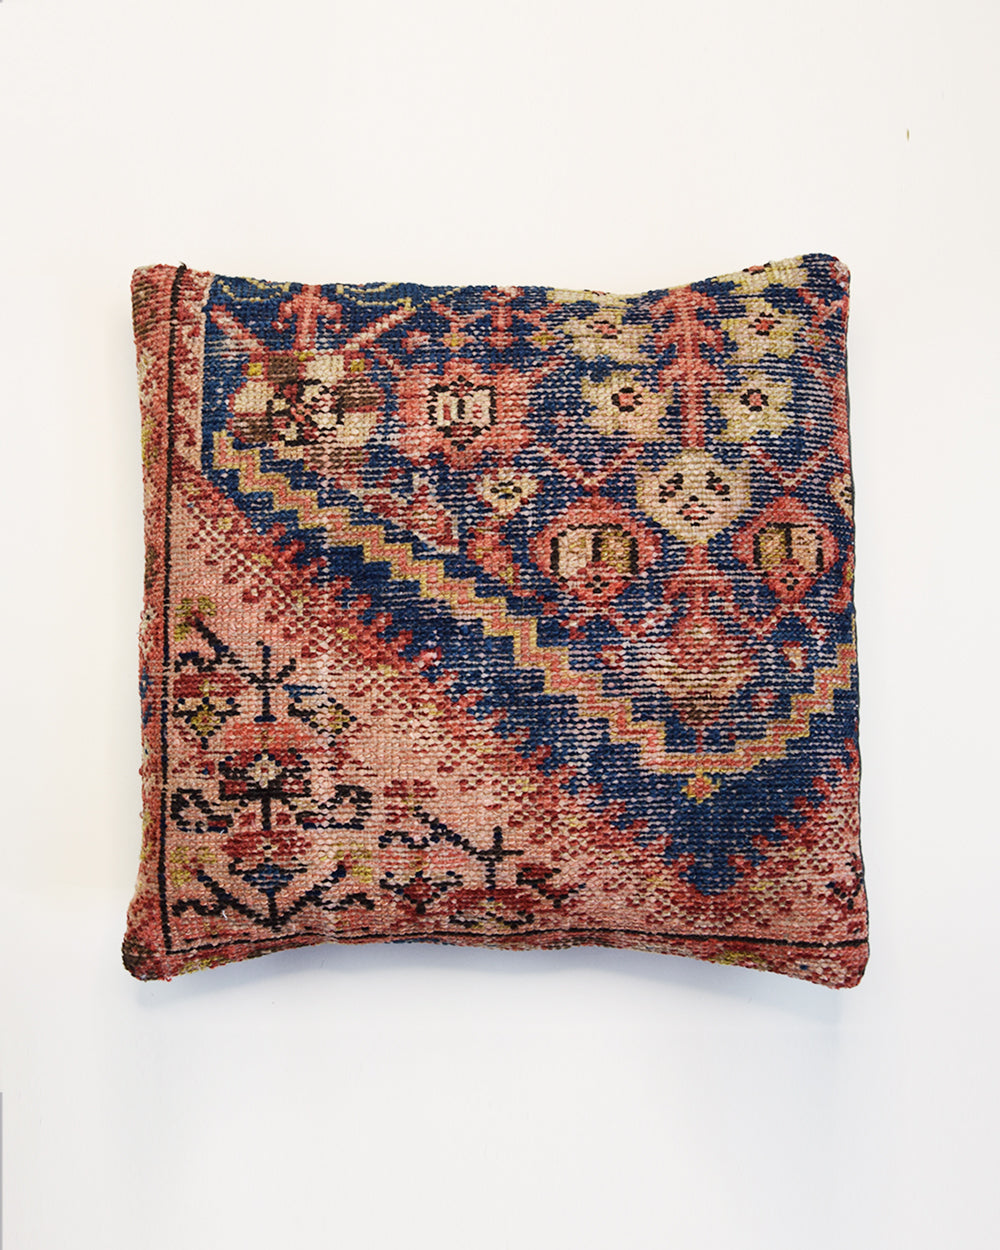 Cushion Cover No. 22